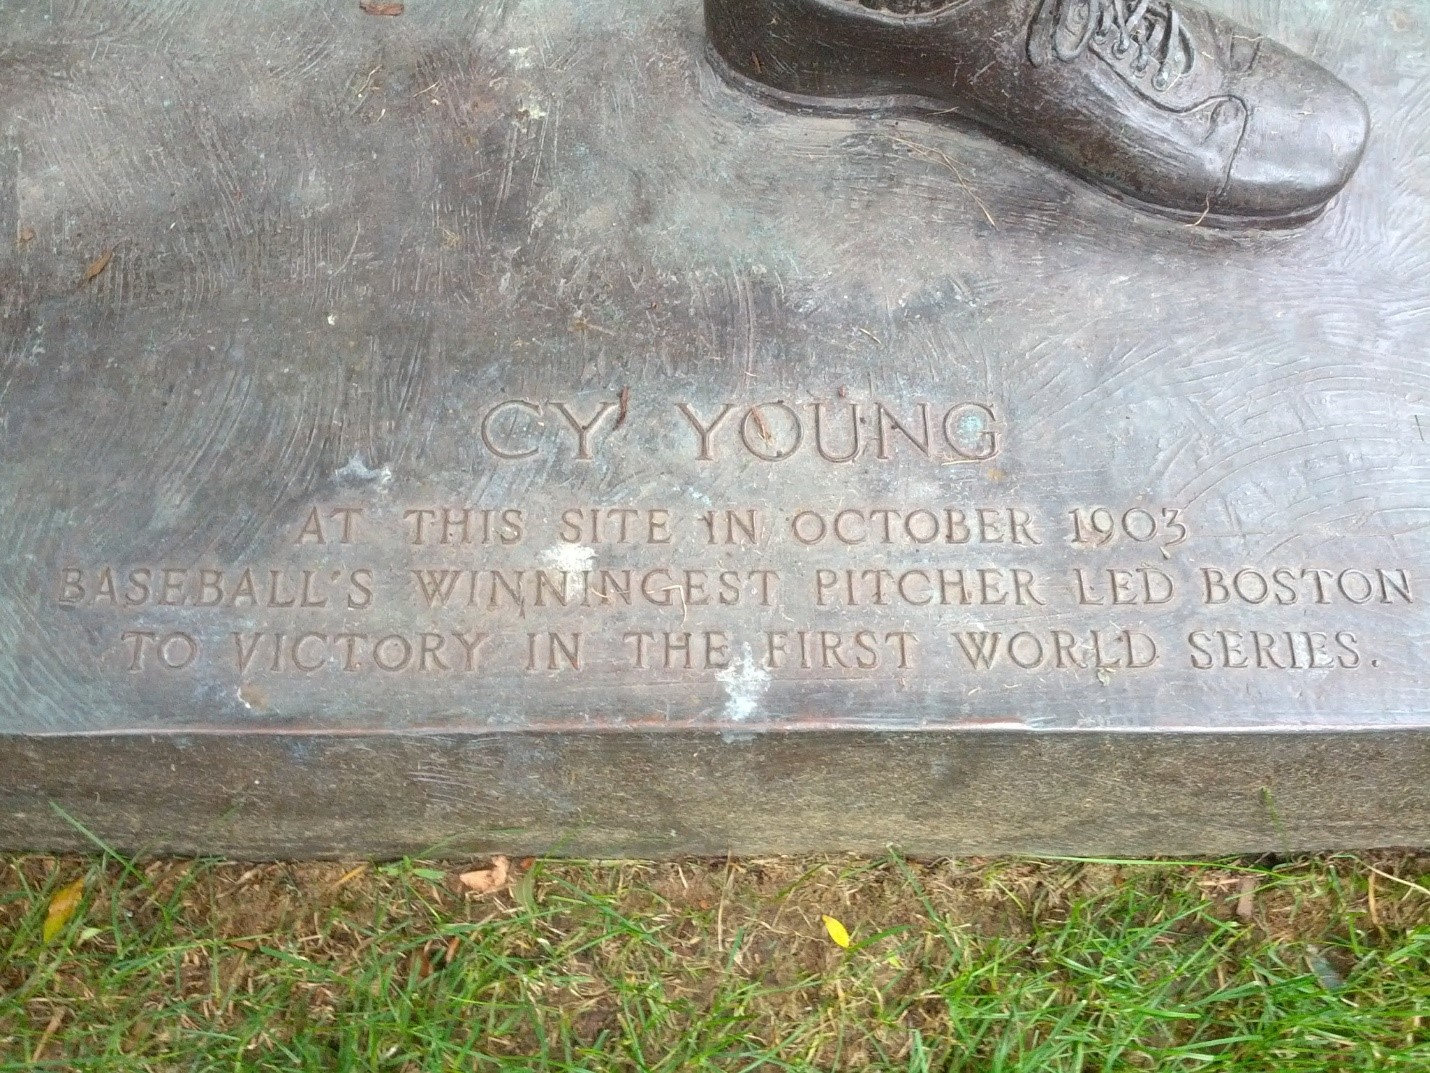 Inscription on Cy Young Statue at Northeastern University.